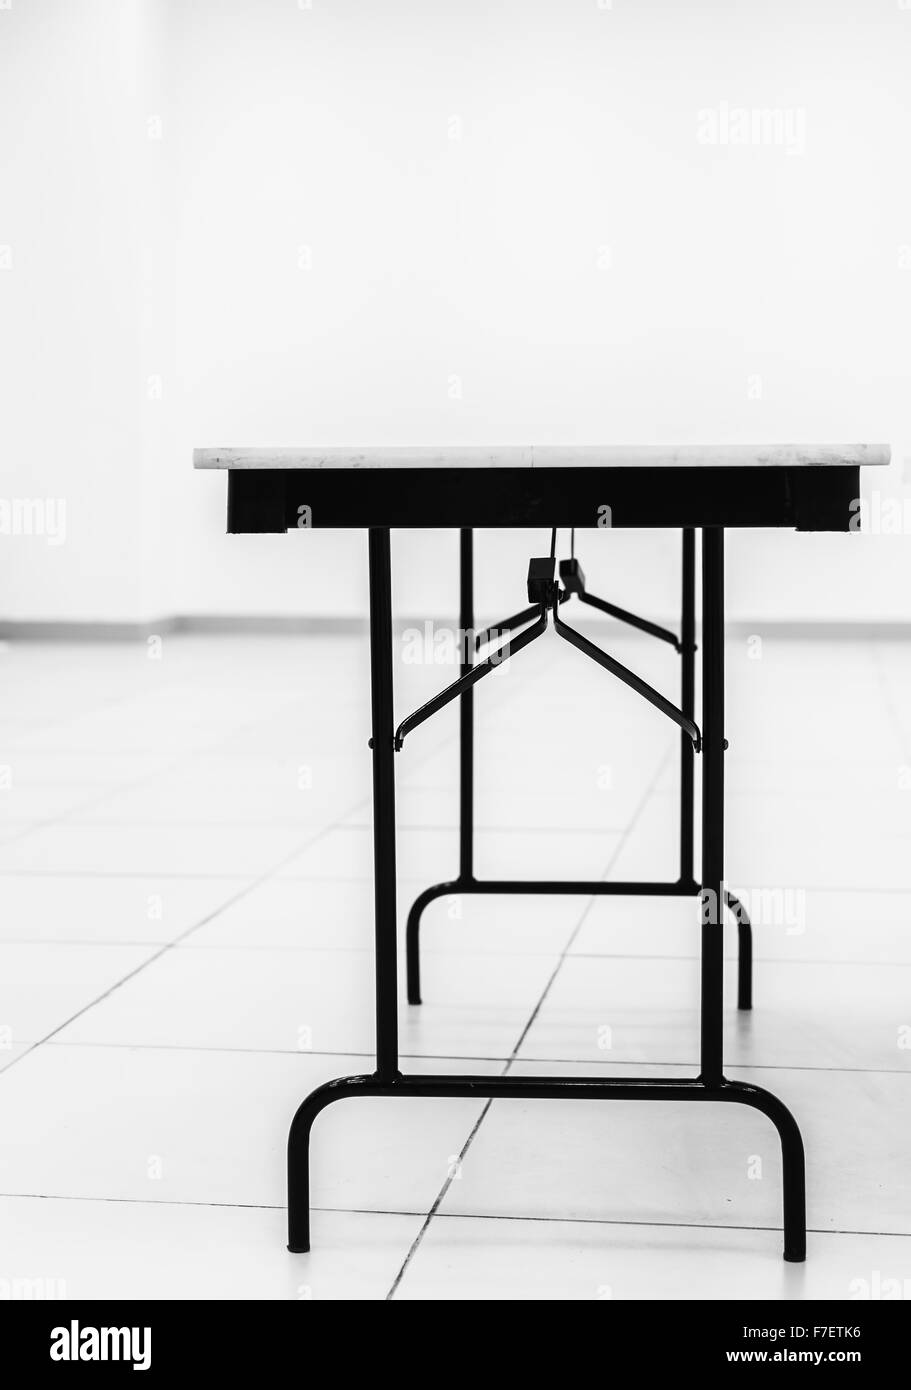 Single solitary table in a white room creates a sense of cold starkness and clinical purity in this black and white - Stock Image